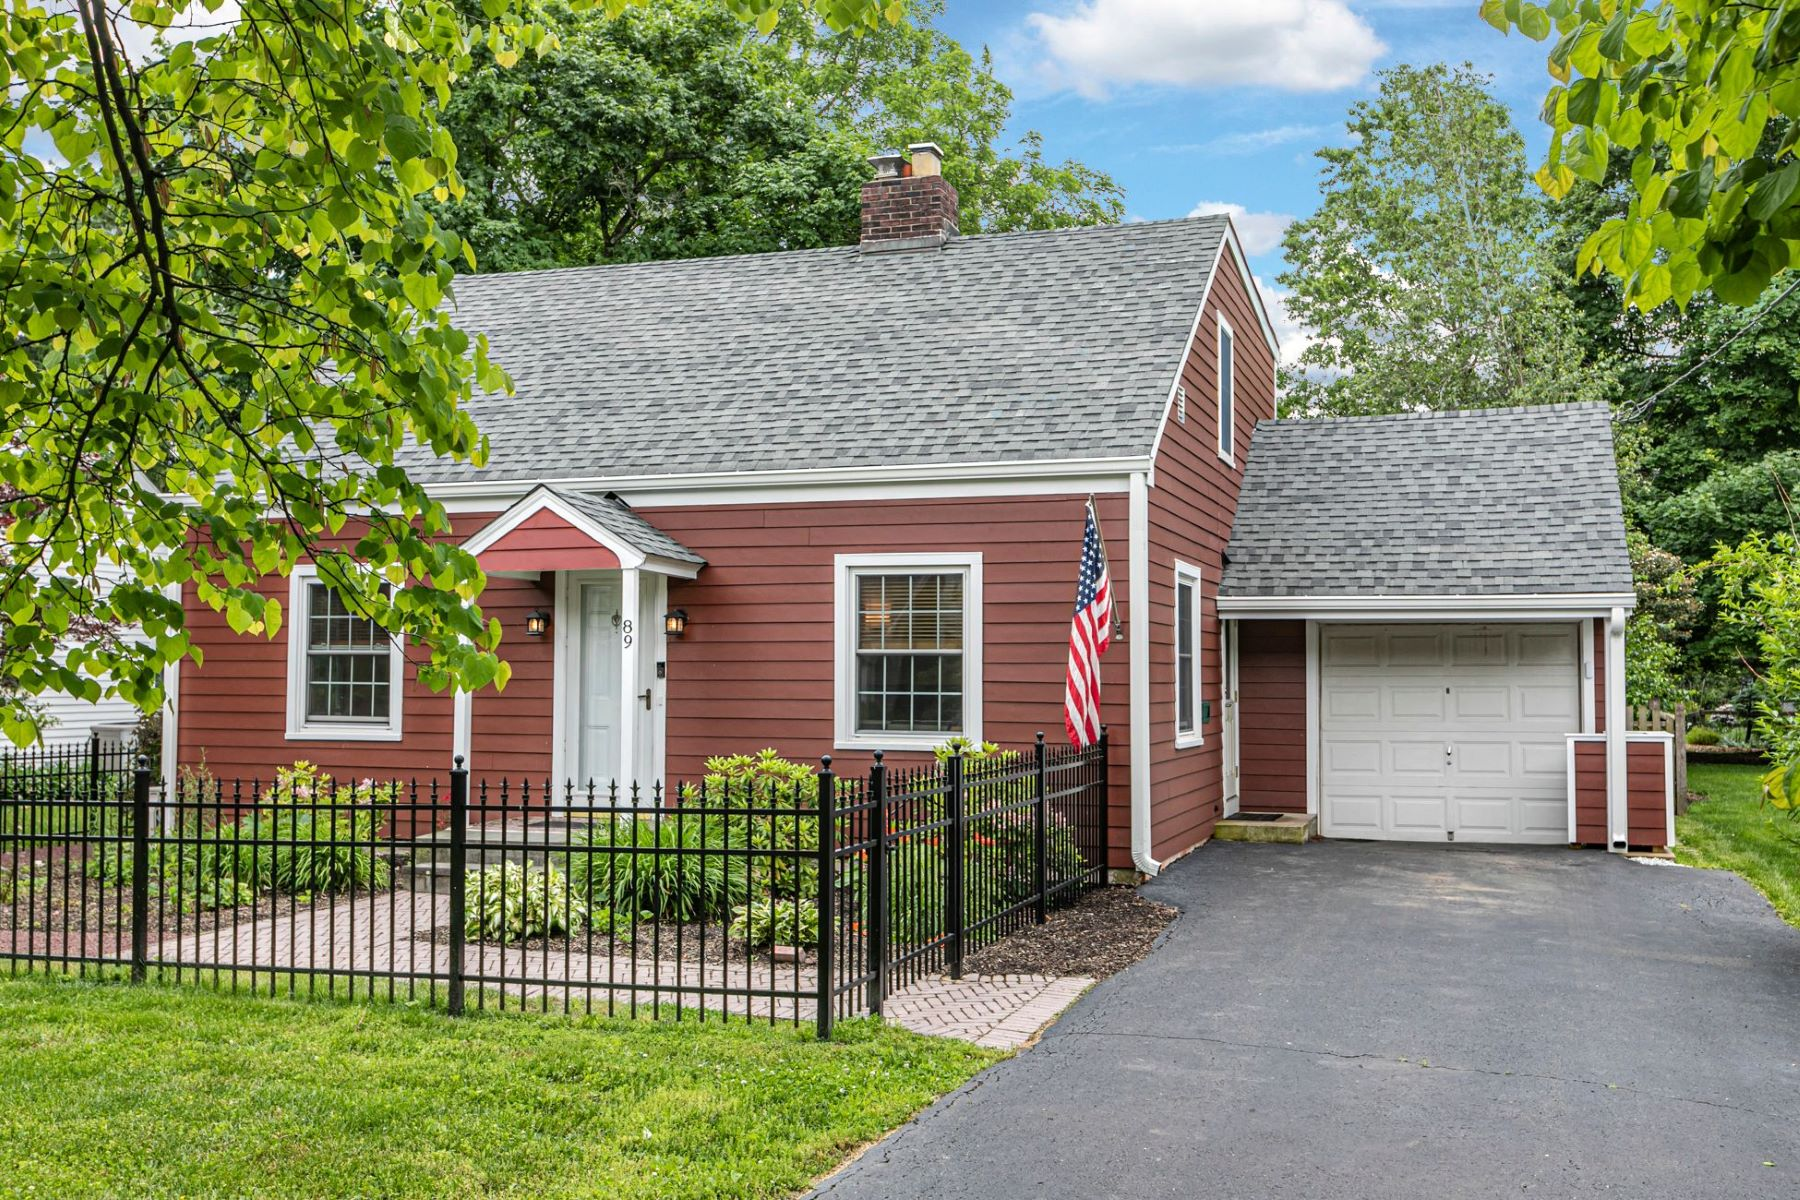 Property for Sale at From Completely Charming to Absolutely Fabulous! 89 East Prospect Street, Hopewell, New Jersey 08525 United States